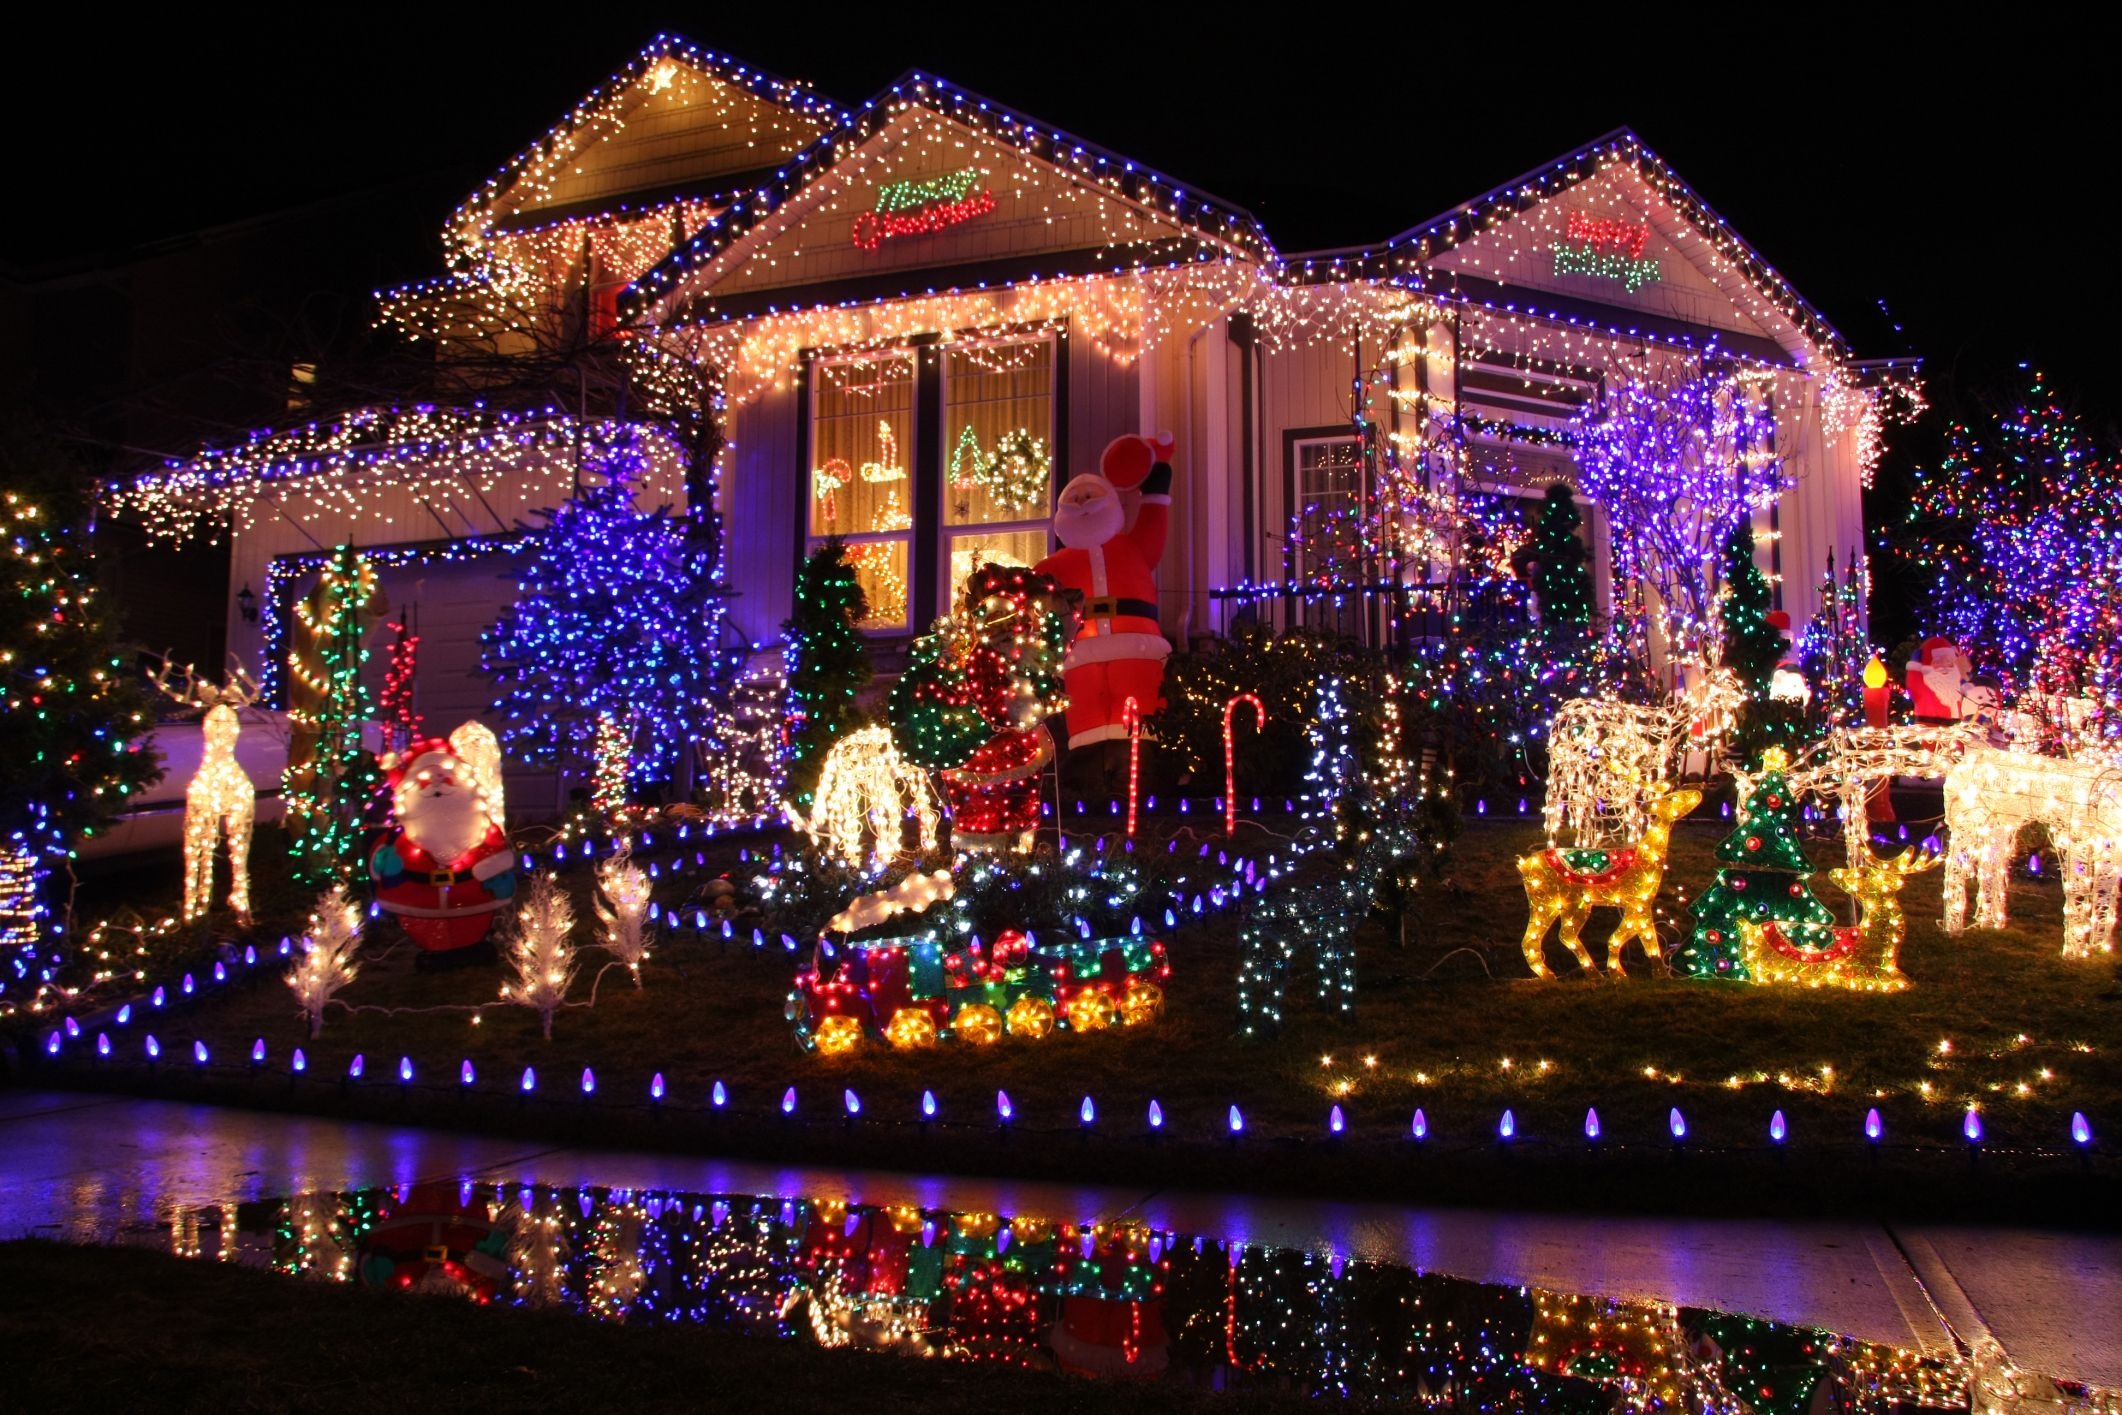 Stunning Design Christmas Lights In The House With Christmas Lights  Decorations Are Laid Out Very Nice